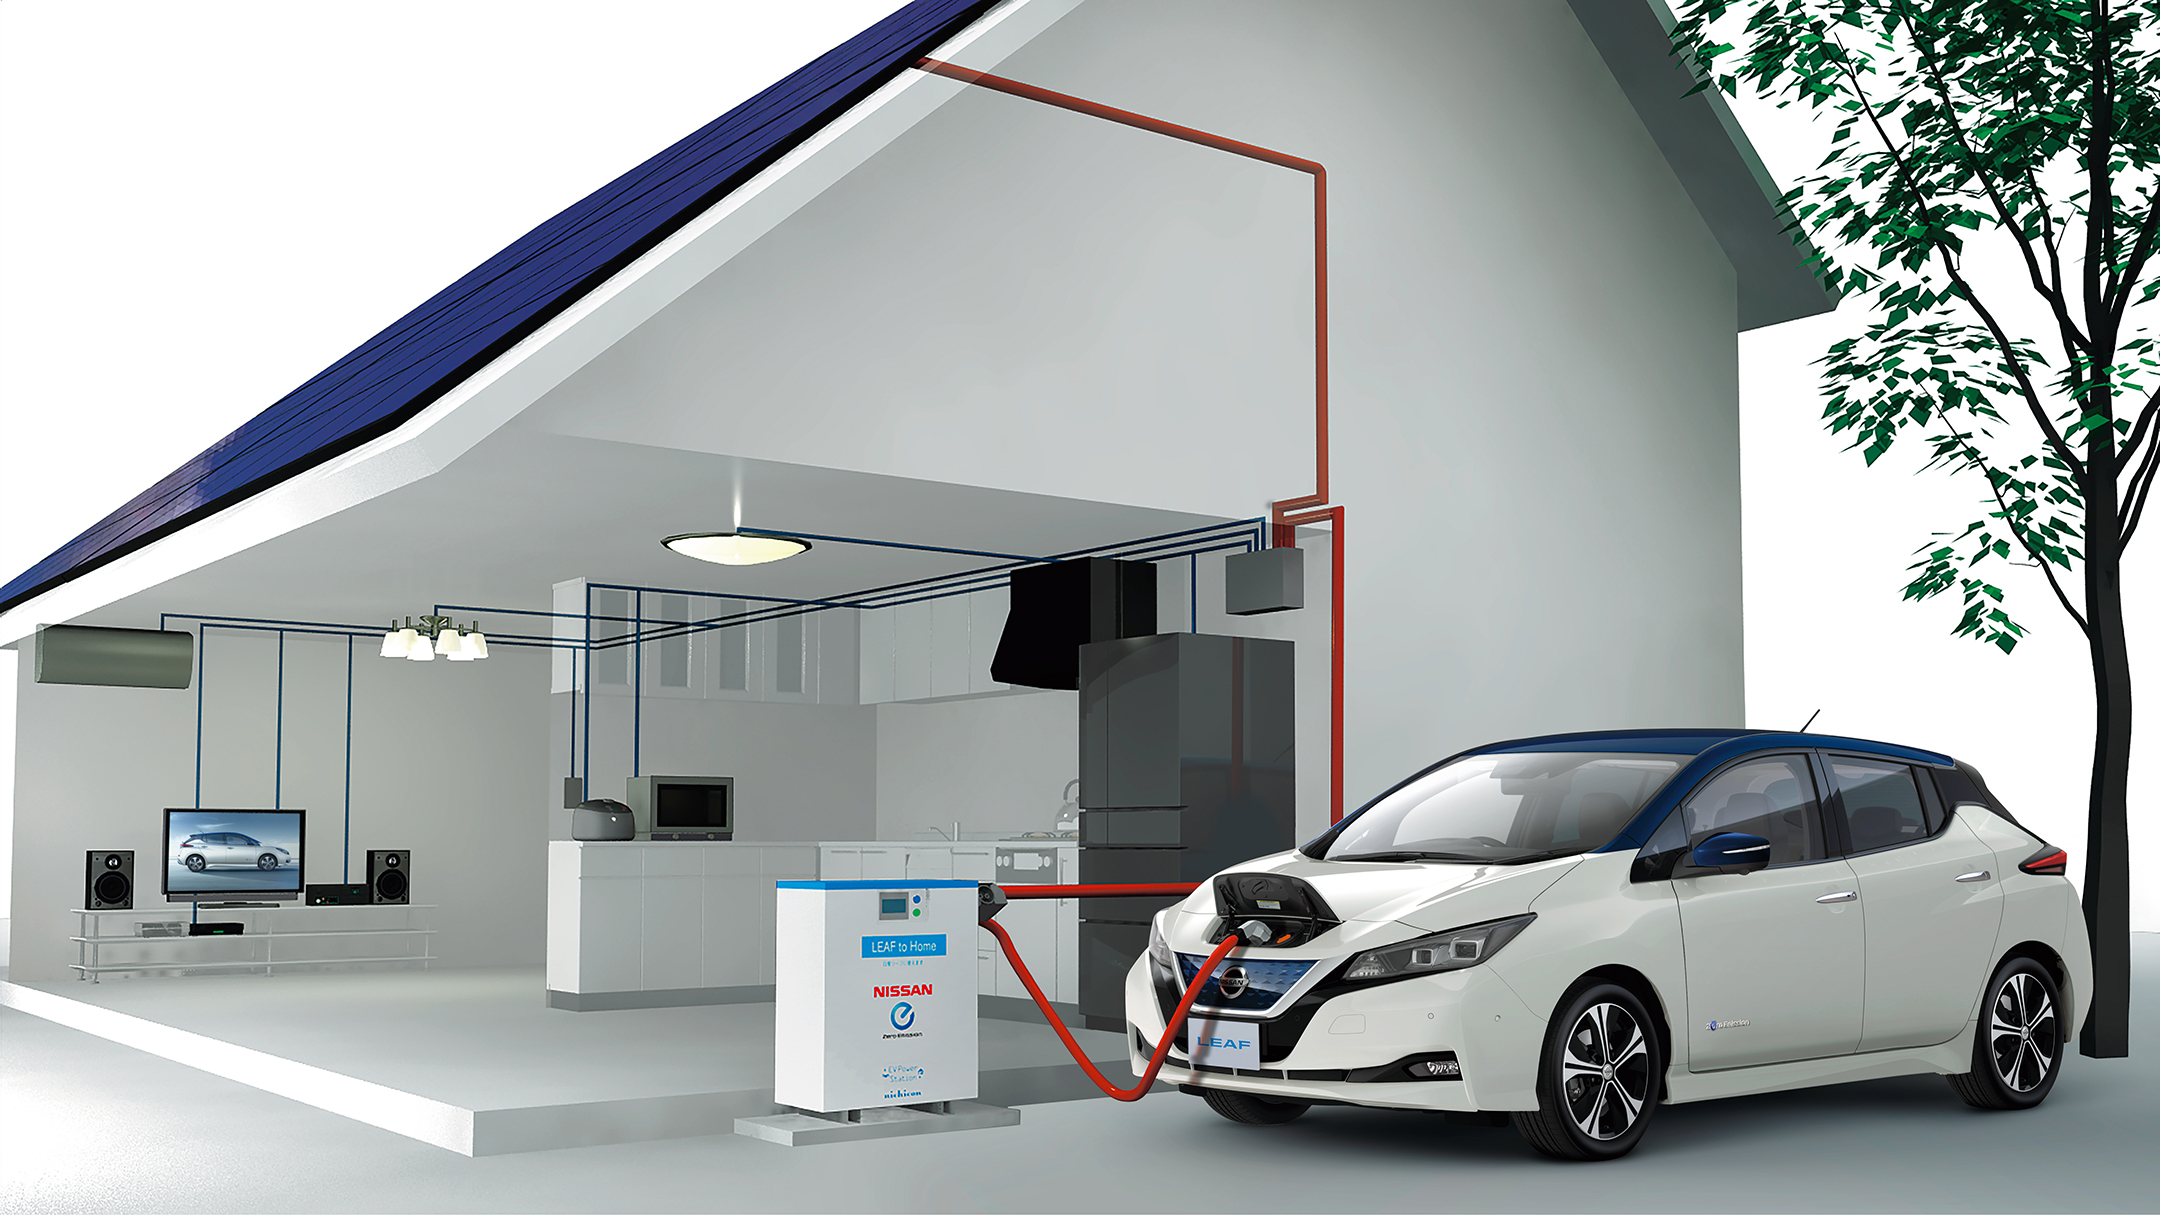 Nissan LEAF 2.0 - 2017 - xStorage Home